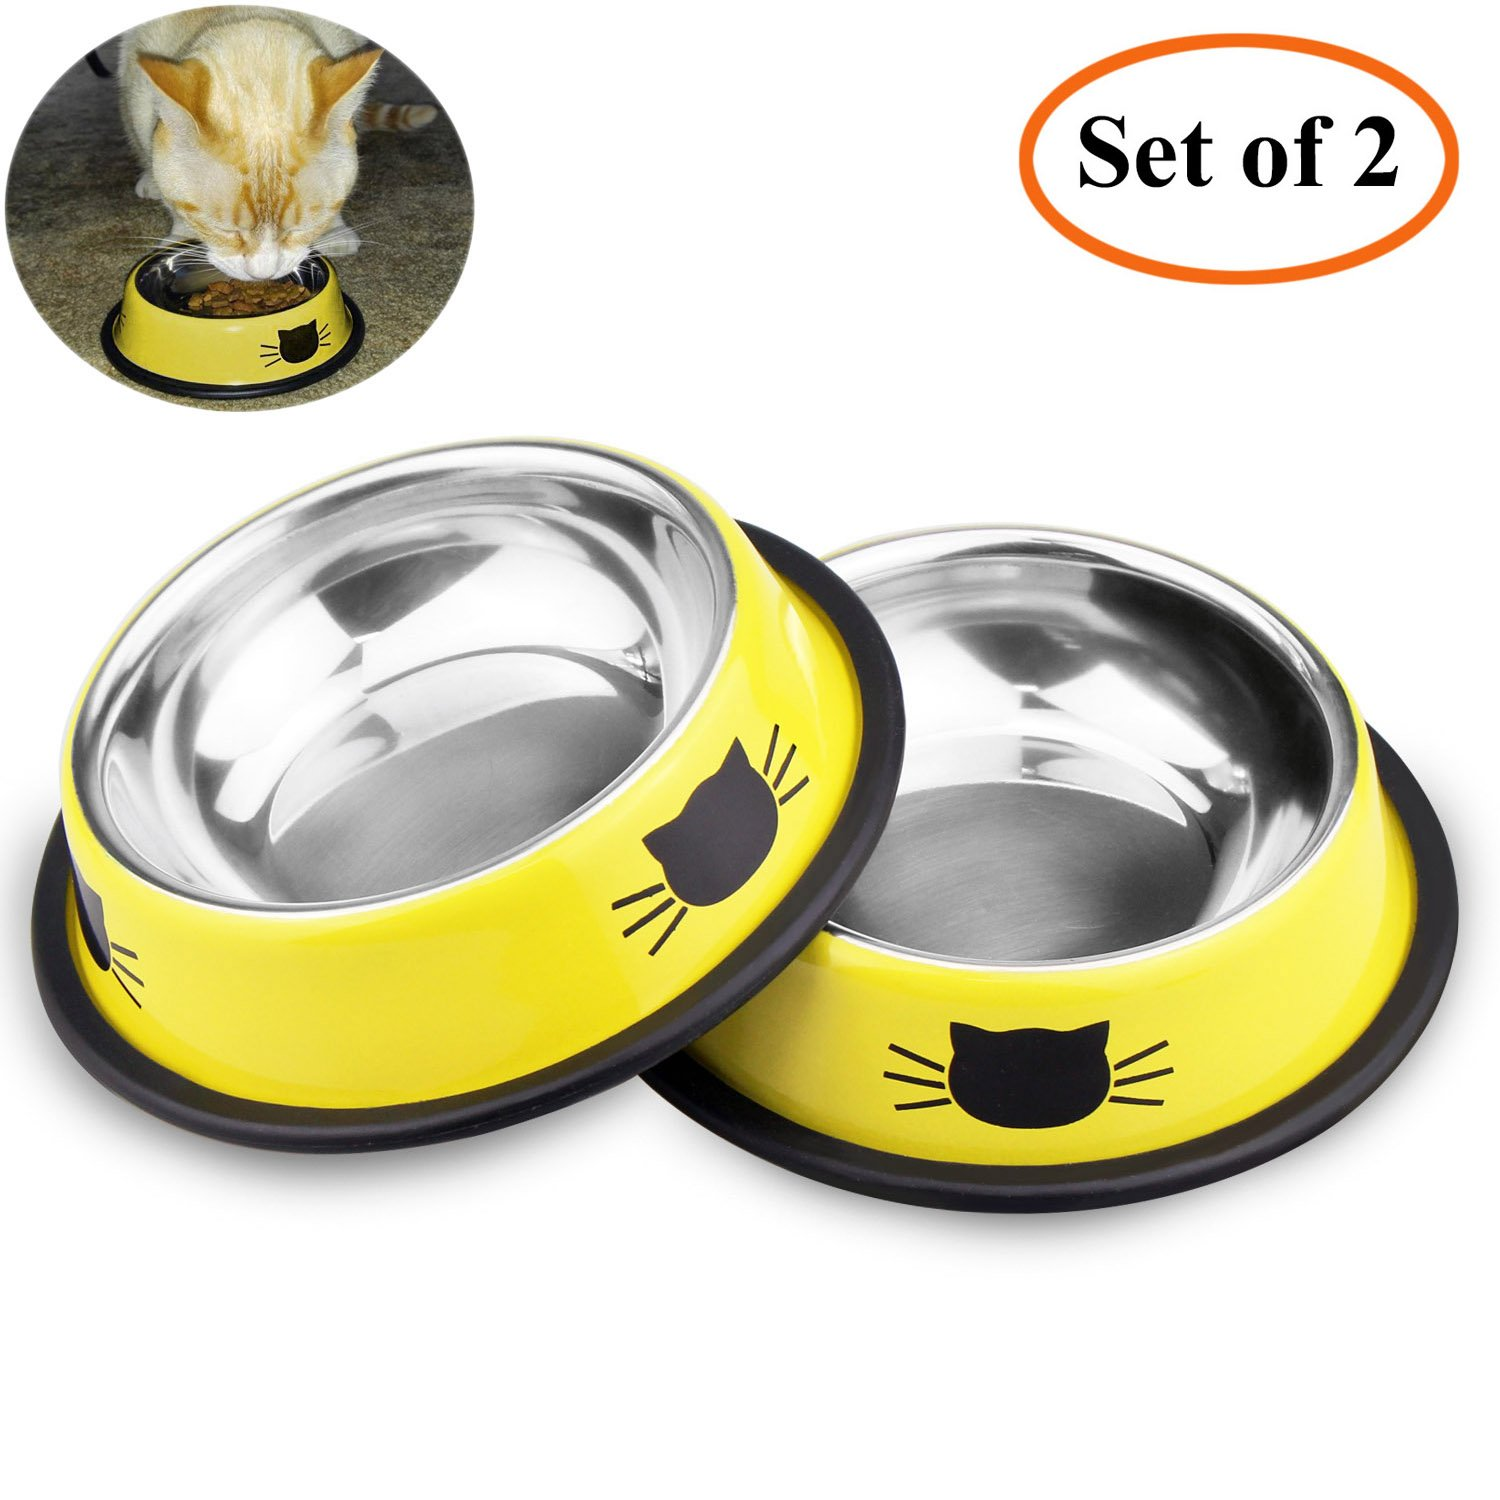 Comsmart Stainless Steel Pet Cat Bowl Kitten Puppy Dish Bowl with Cute Cats Painted Non-Skid for Small Dogs Cats Animals (Set of 2) (Yellow/Yellow) by Comsmart (Image #1)